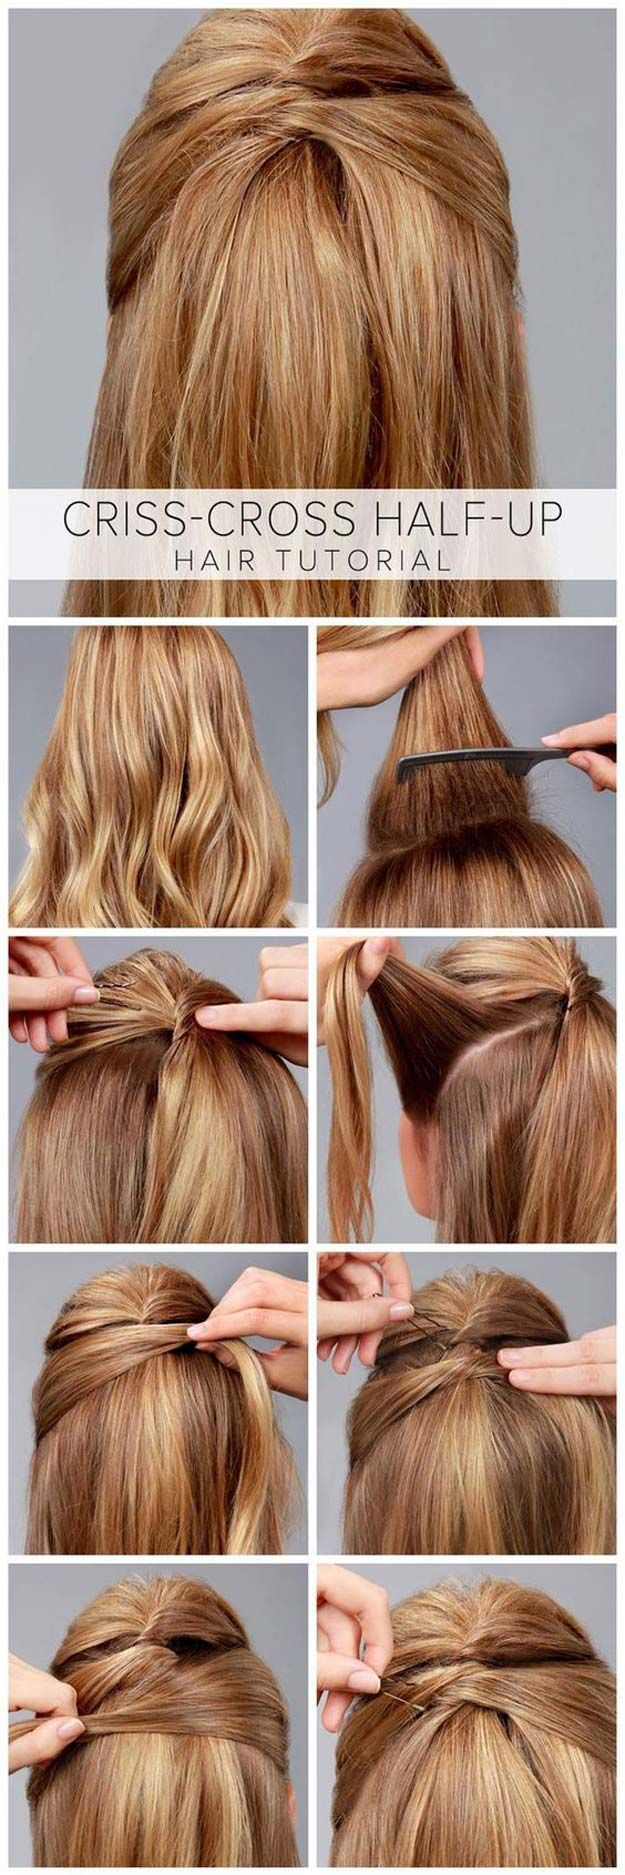 best 25+ hairstyle for long hair ideas on pinterest | braids for